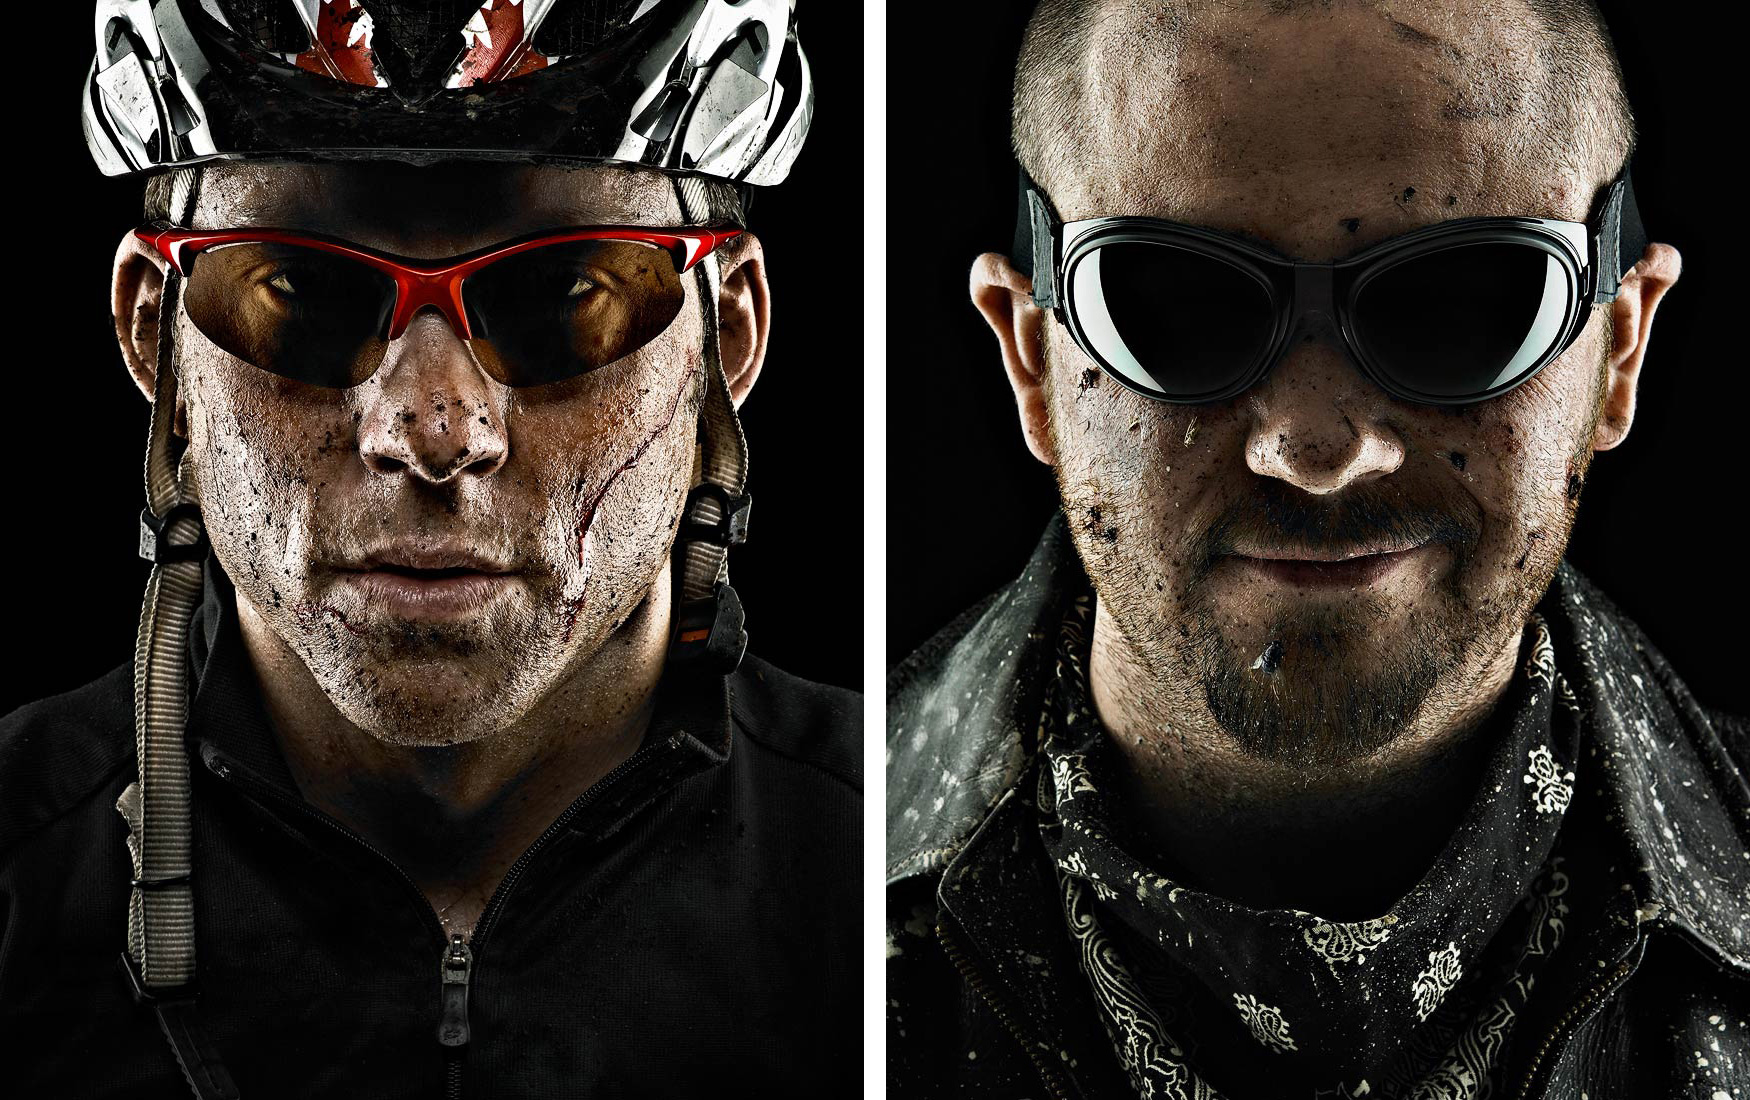 Athletes wearing protective eyewear